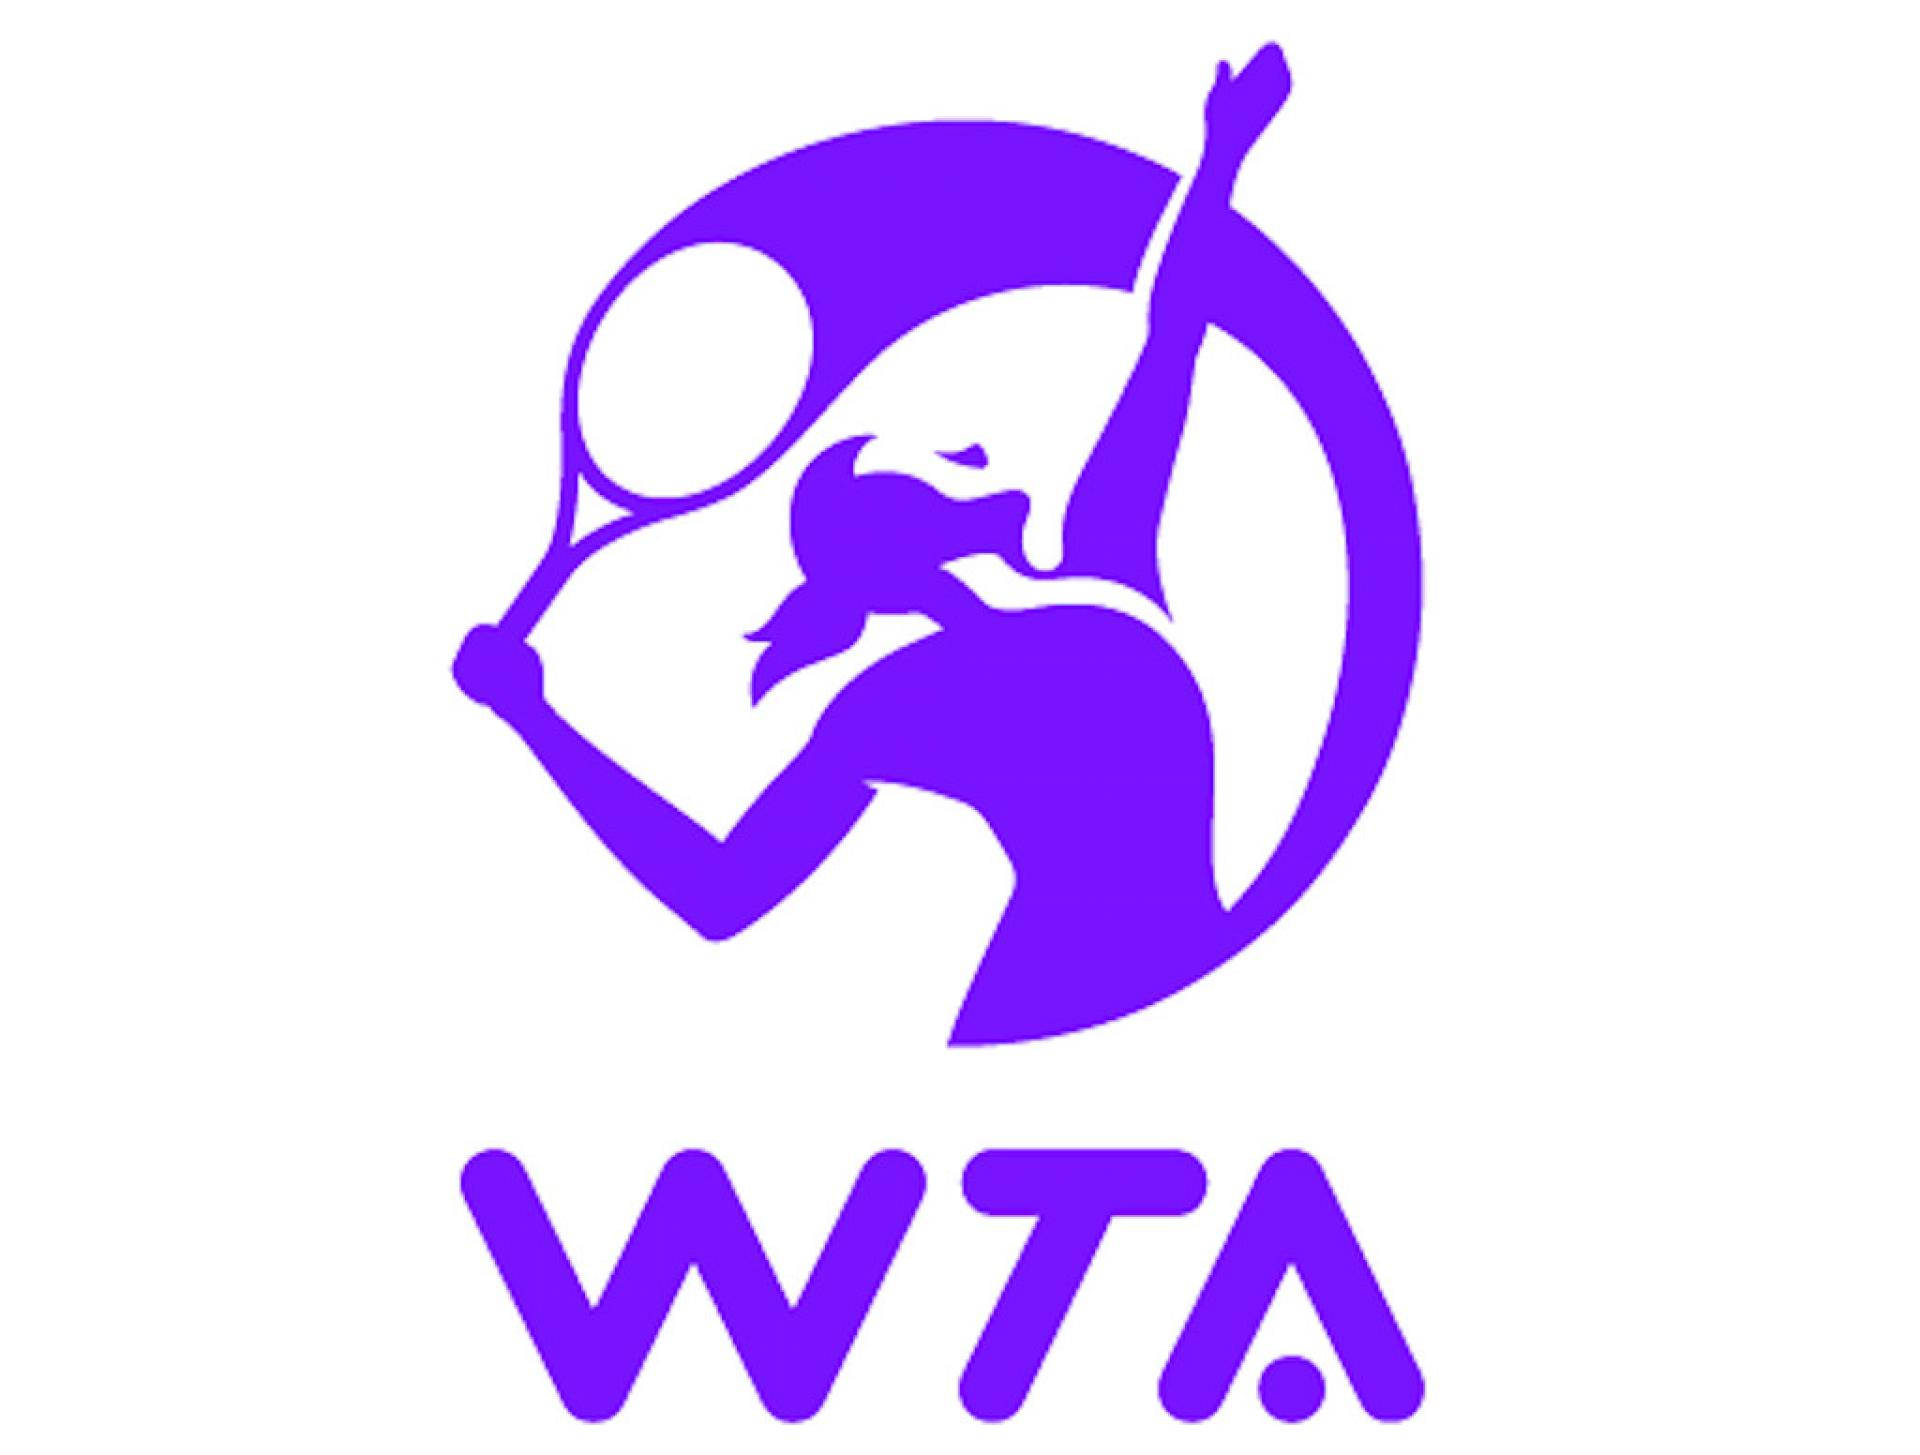 Wta 2021 Calendar WTA schedule: Here are the firsts seven weeks of 2021!